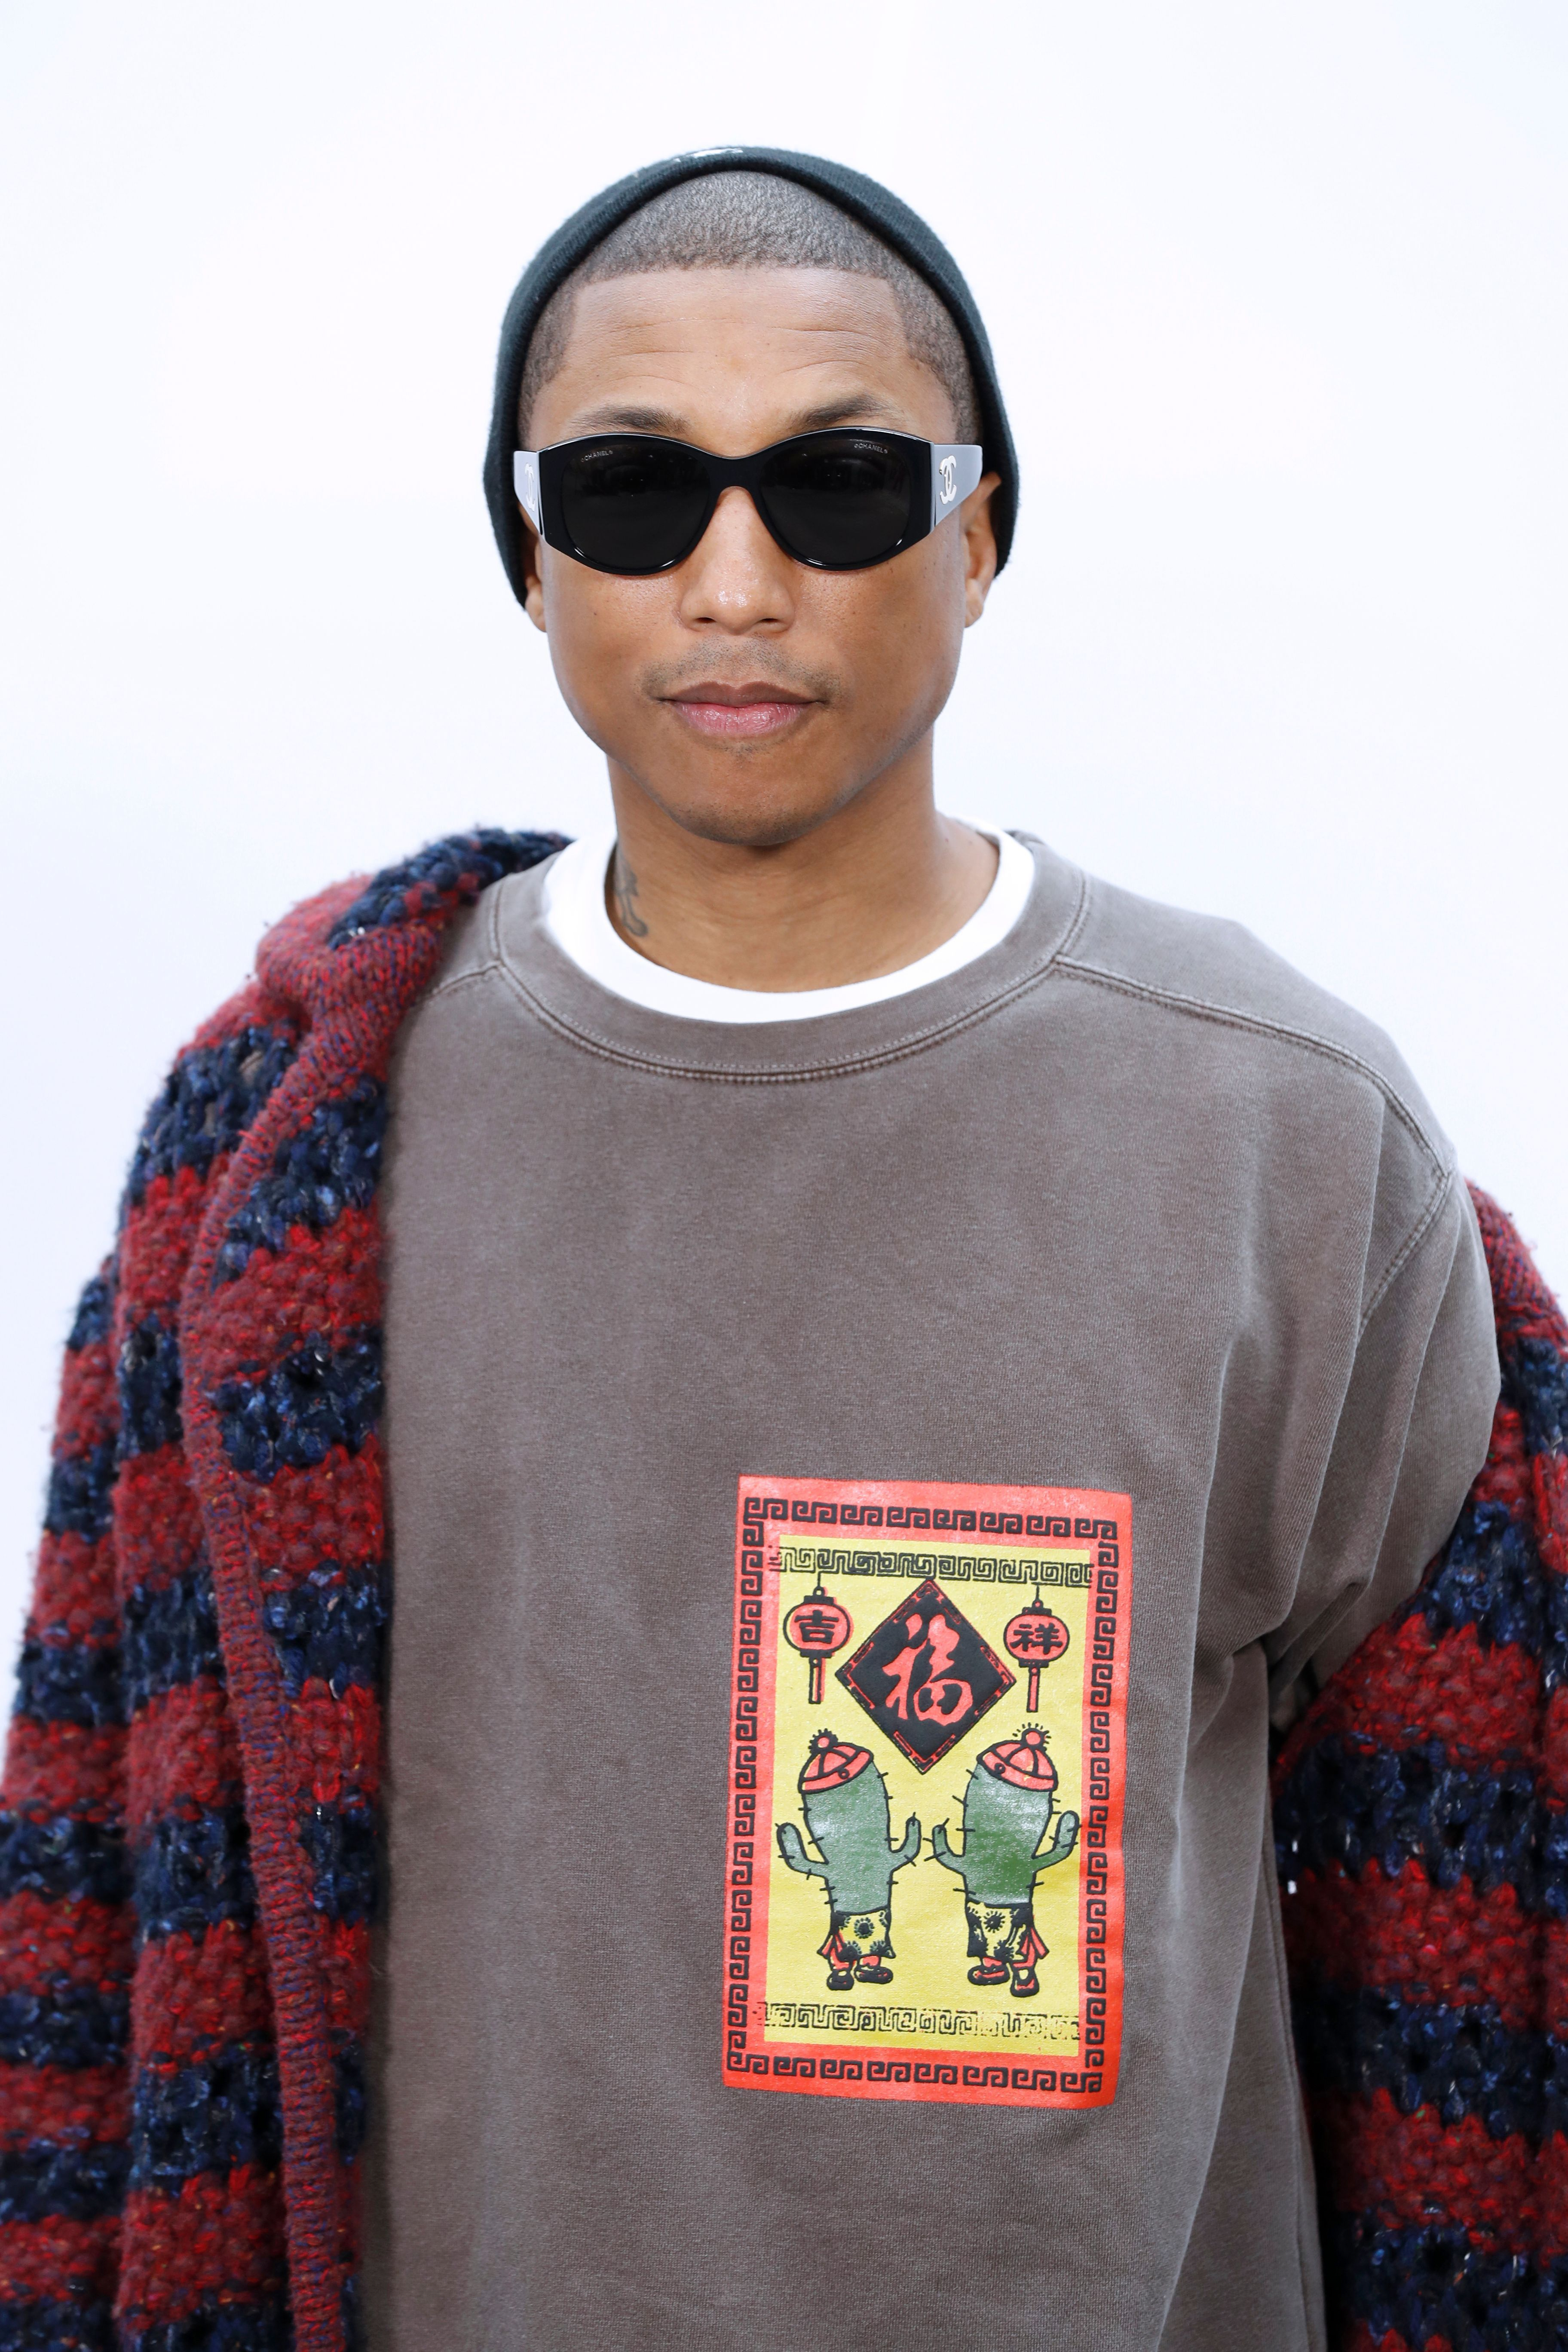 Pharrell Williams Explains Why He's 'Embarrassed' By 'Blurred Lines' Lyrics